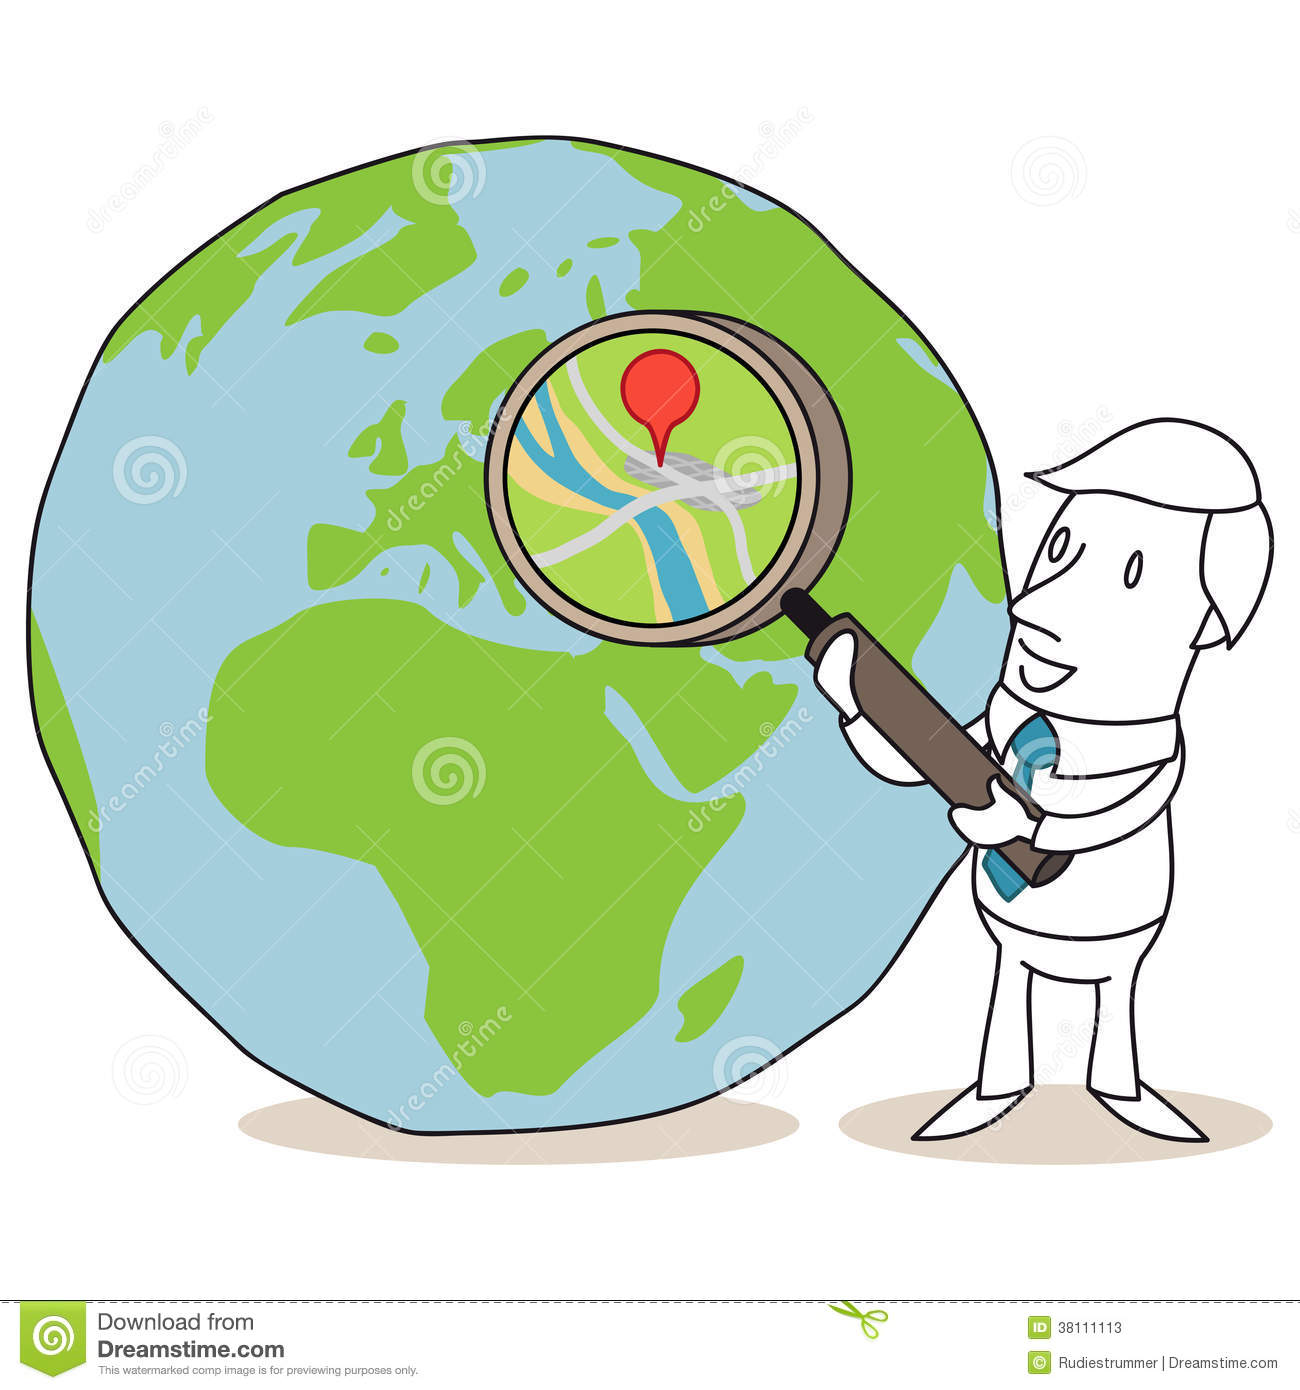 Animation Character Design Spot : Businessman with magnifying glass and globe stock photos